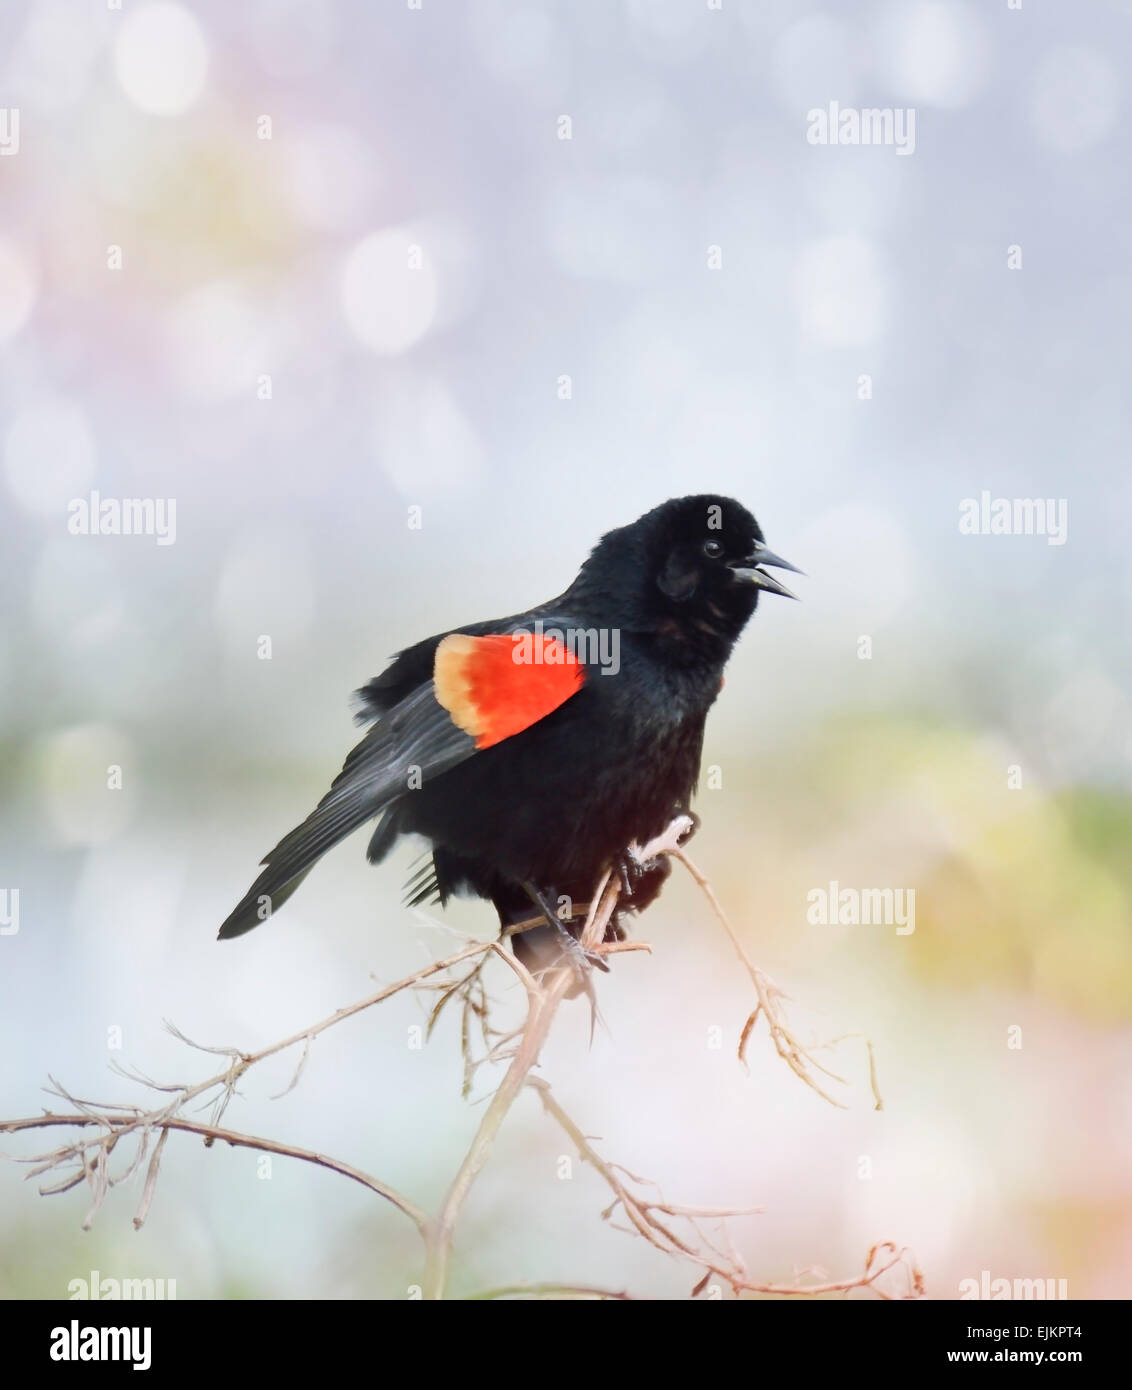 Singing Red Wing Blackbird.Spring Time. Stock Photo